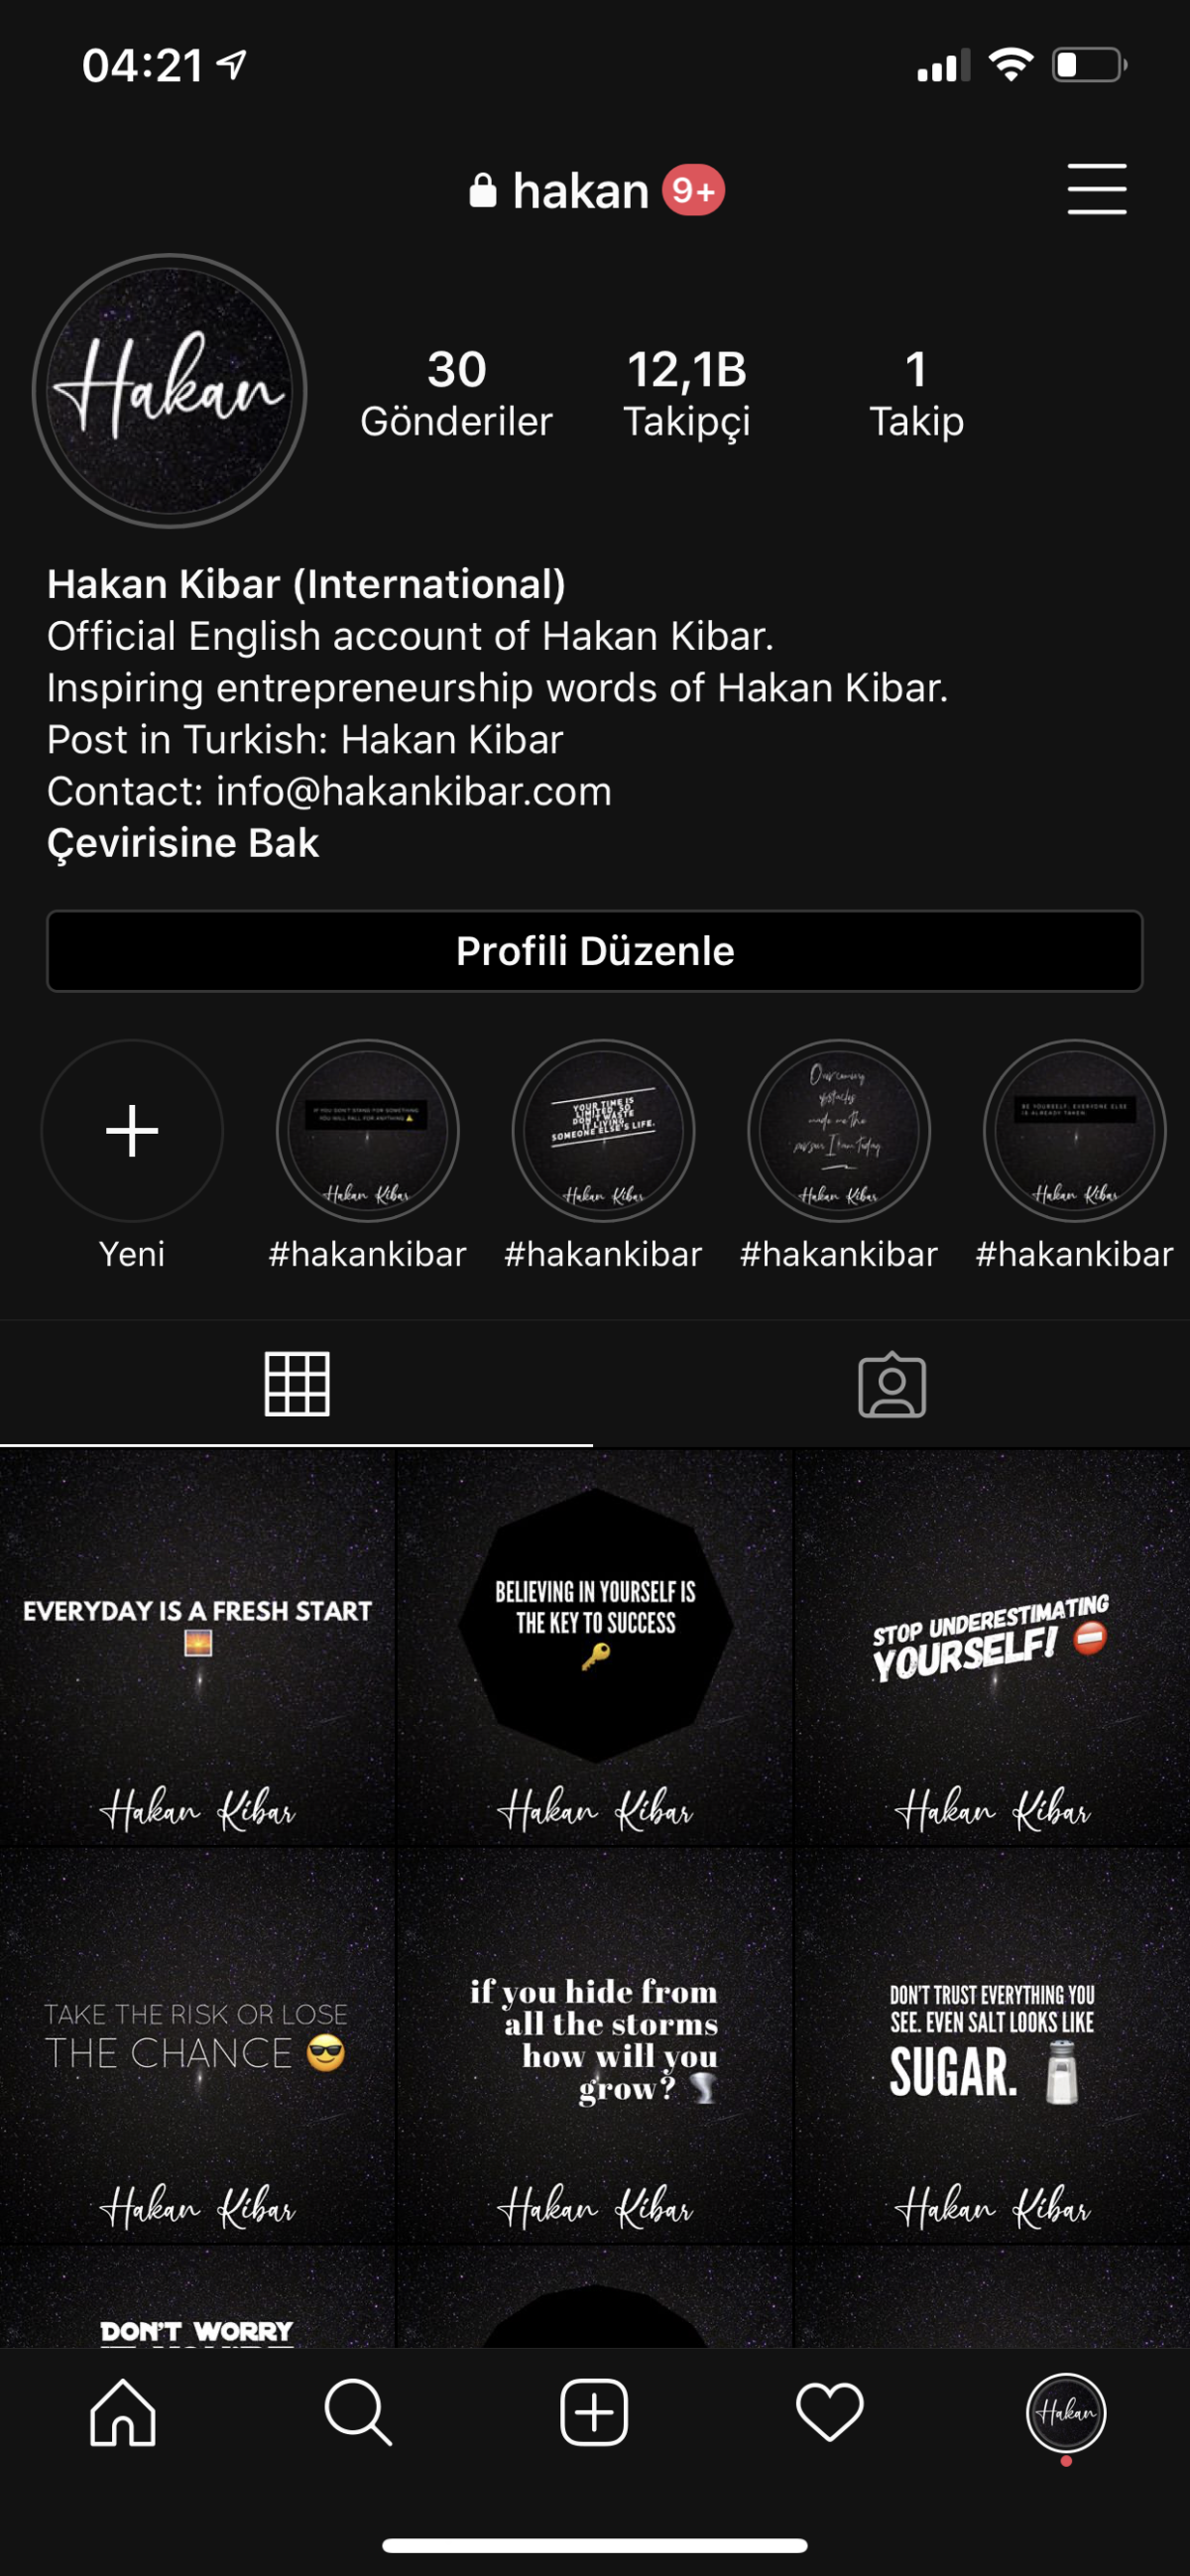 Hakan Kibar (International) instagram hakan account profile picture